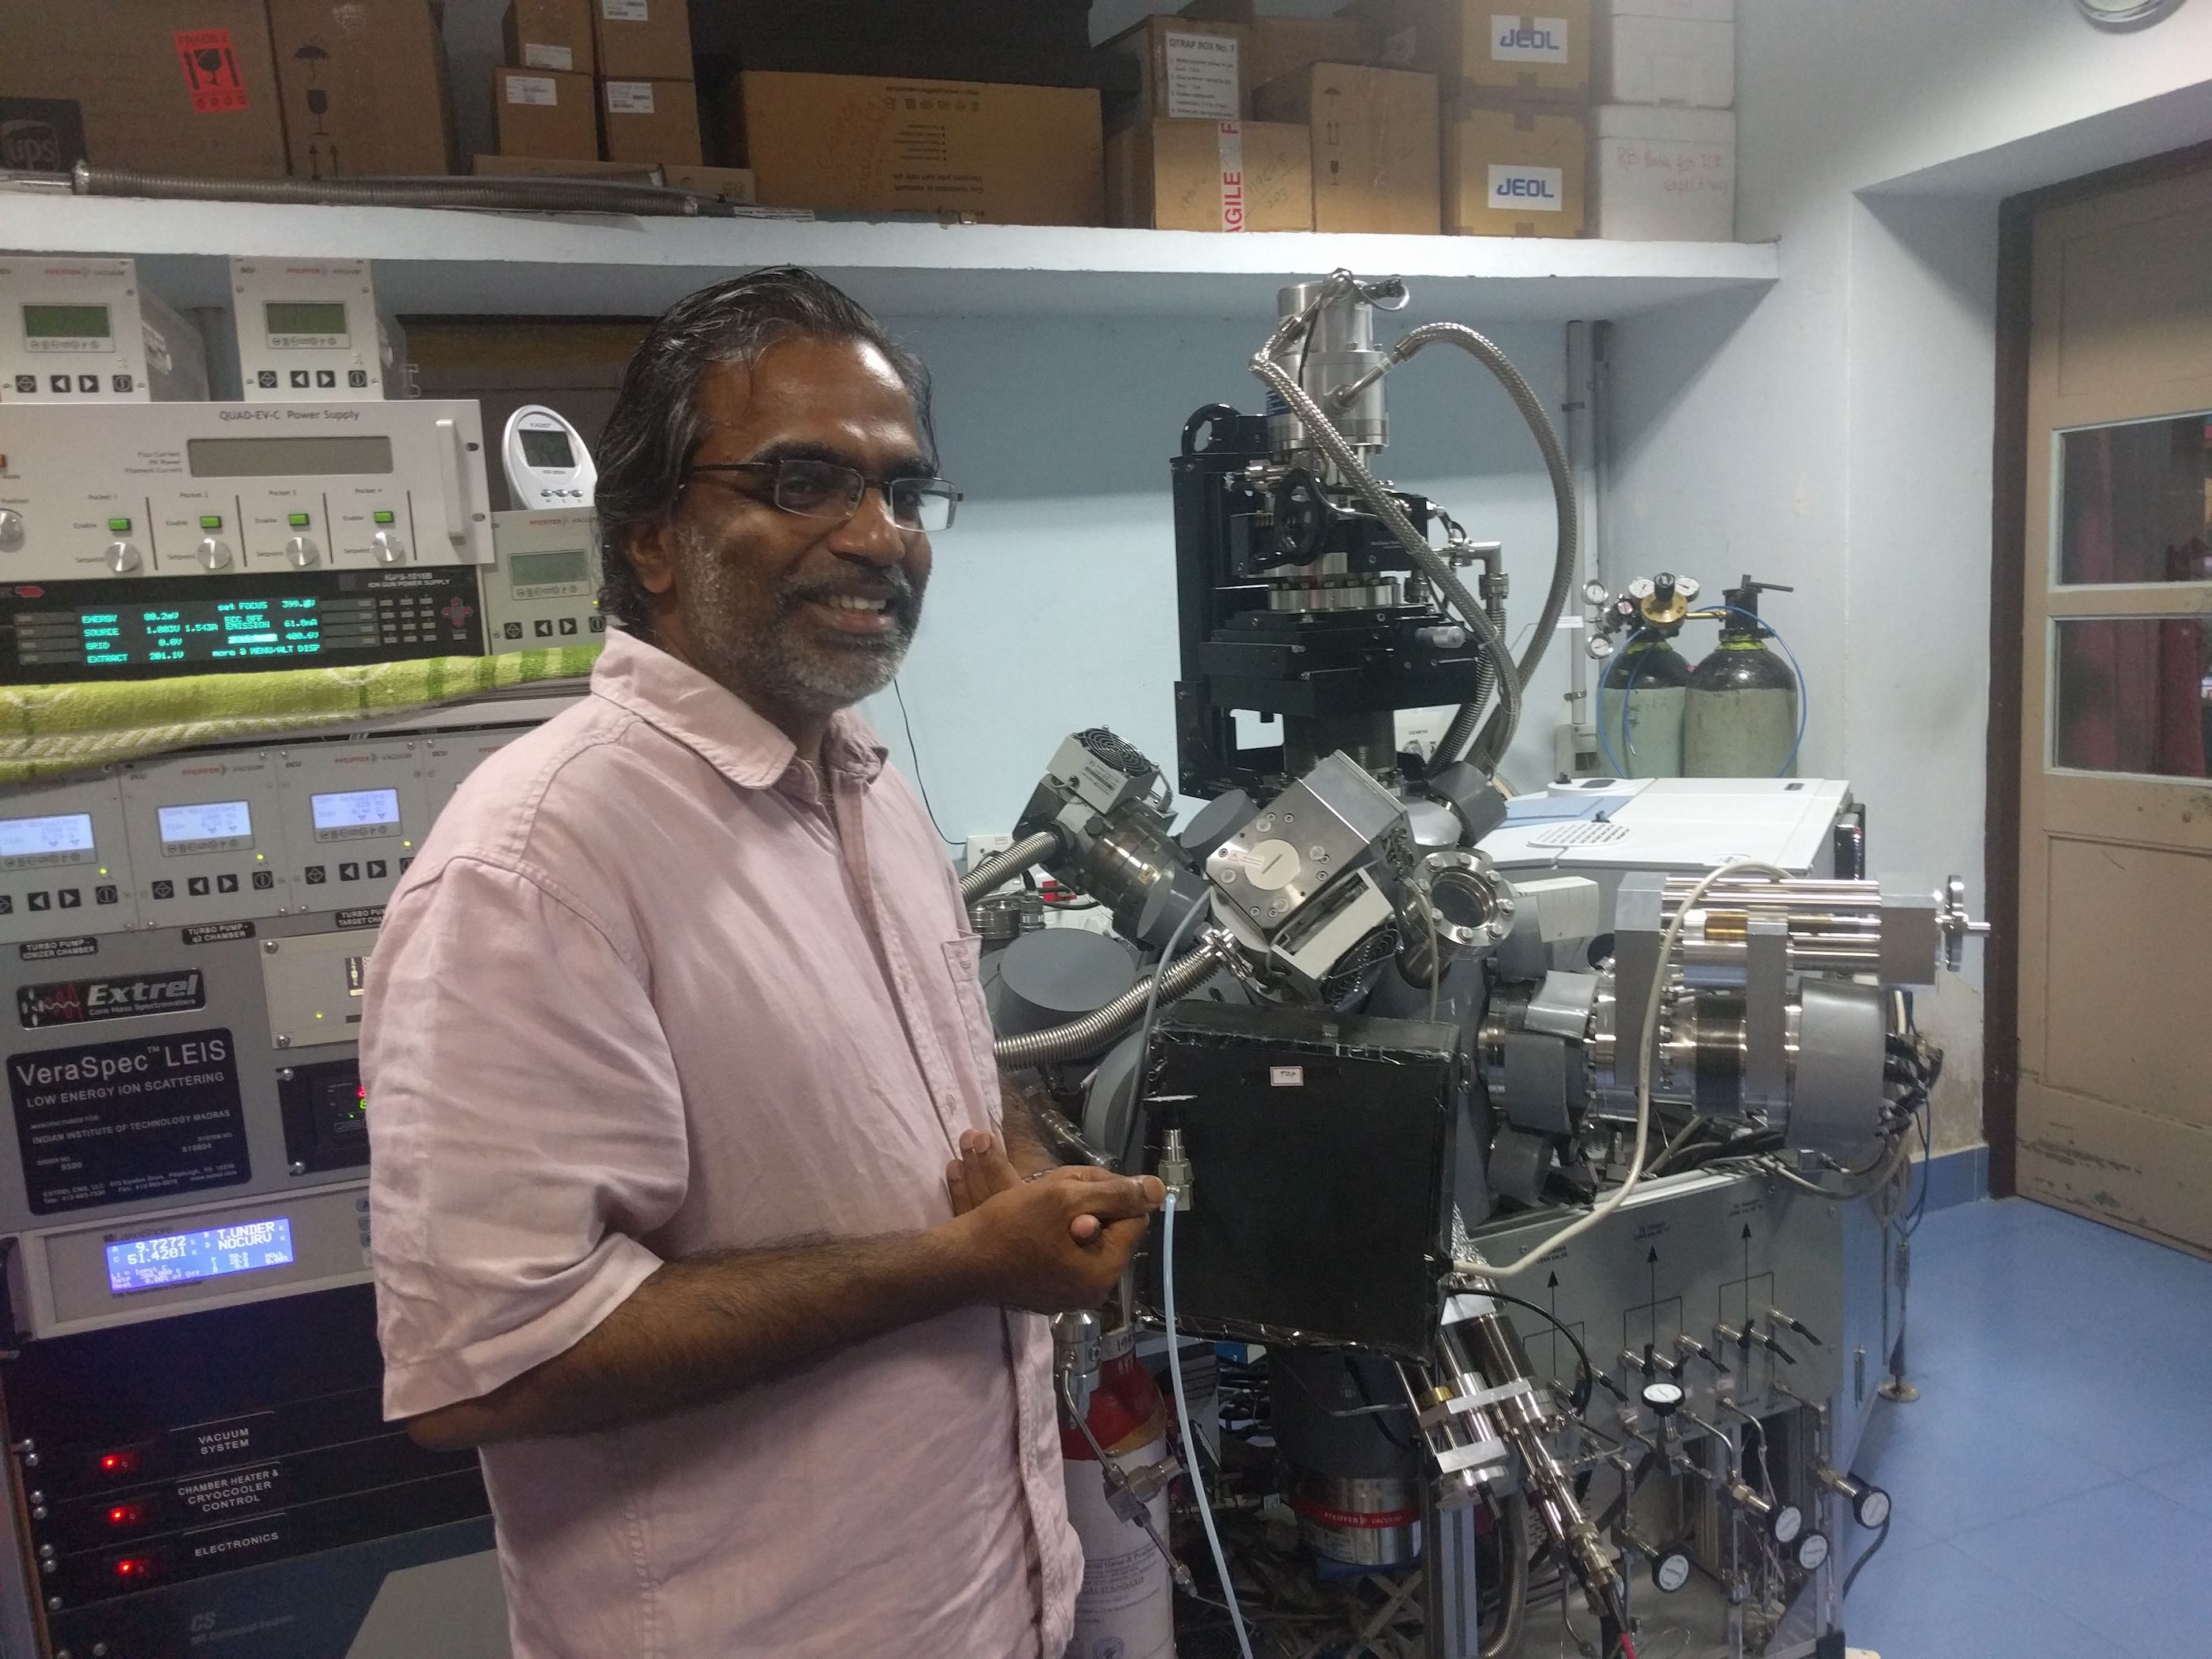 Continuing his tradition of building instruments, T Pradeep built this spectrometer in his lab at a cost of $1 million, only one of such in the world, to study the first few molecules of ice.